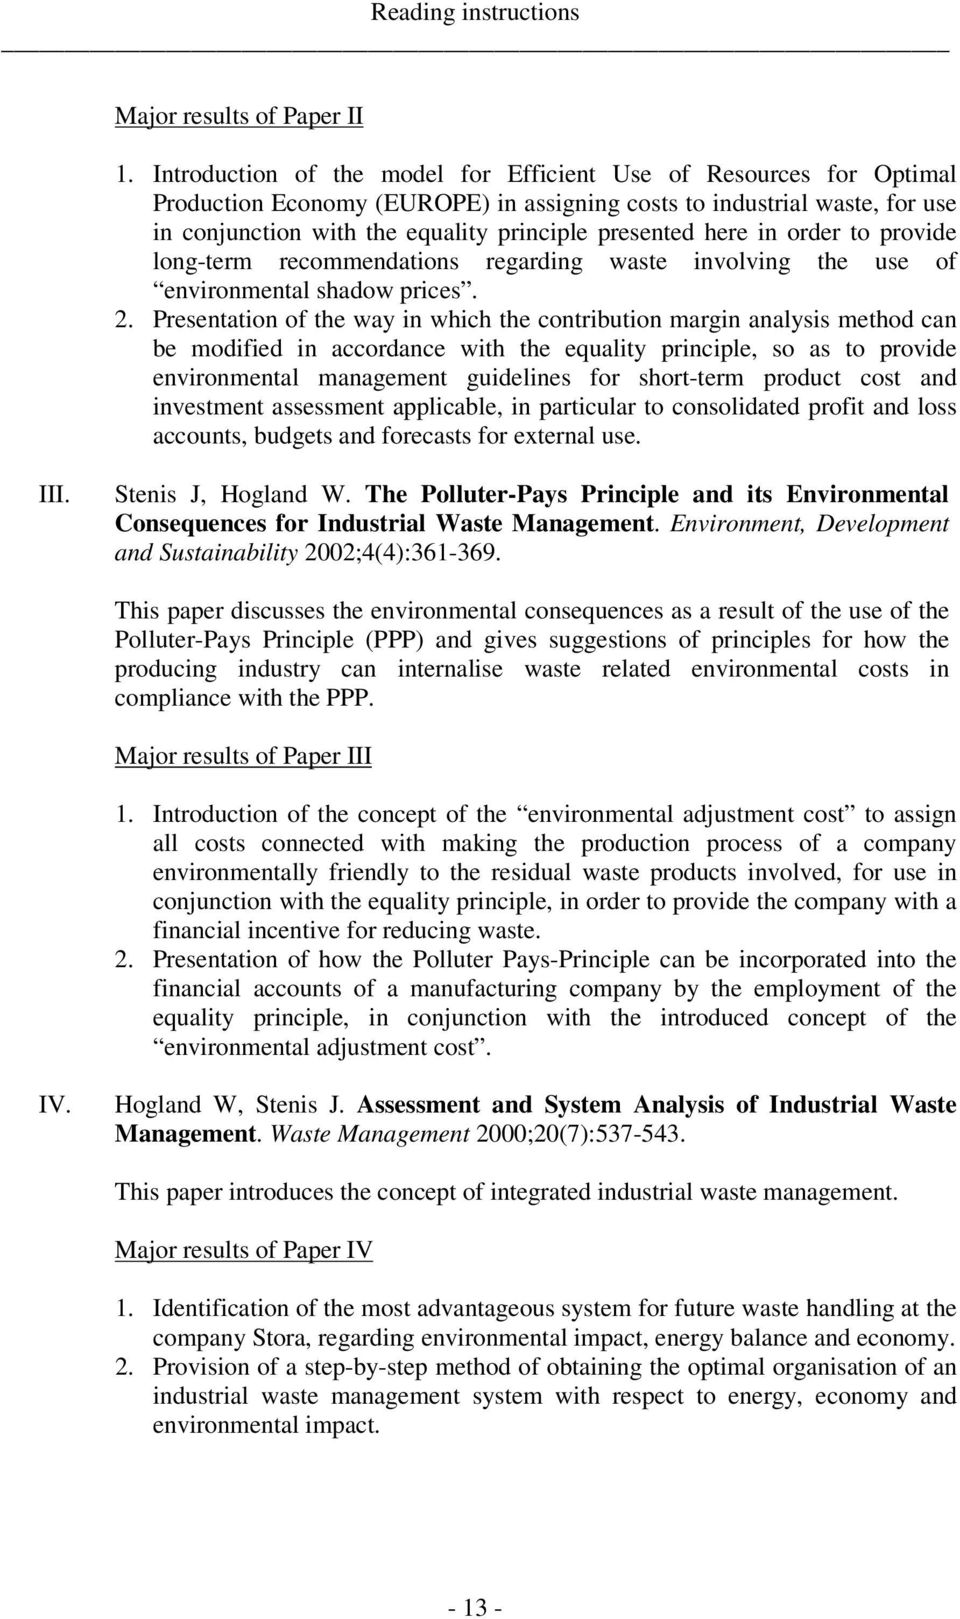 here in order to provide long-term recommendations regarding waste involving the use of environmental shadow prices. 2.